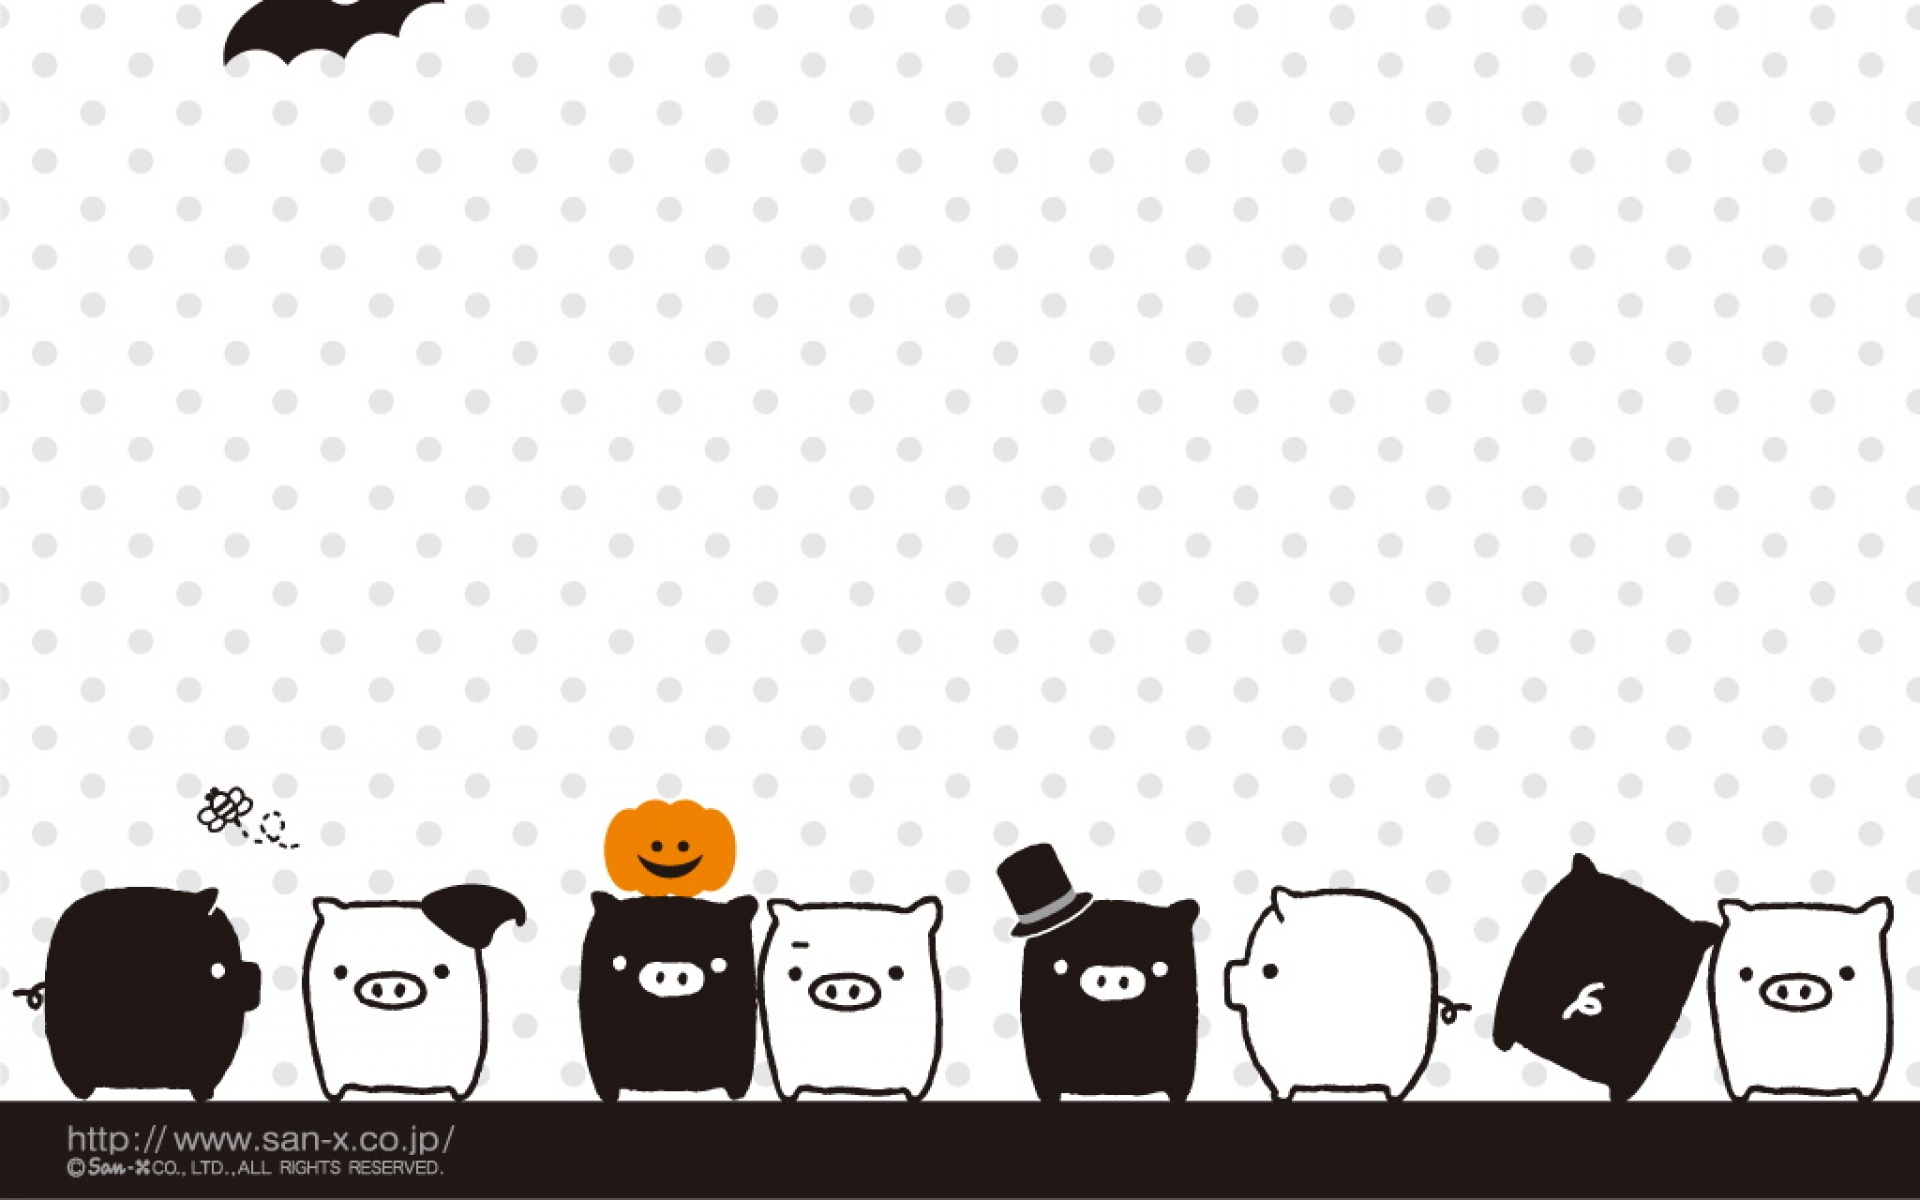 Mono KuRo BOO wallpapers: Lovely black pig and white pig cartoon